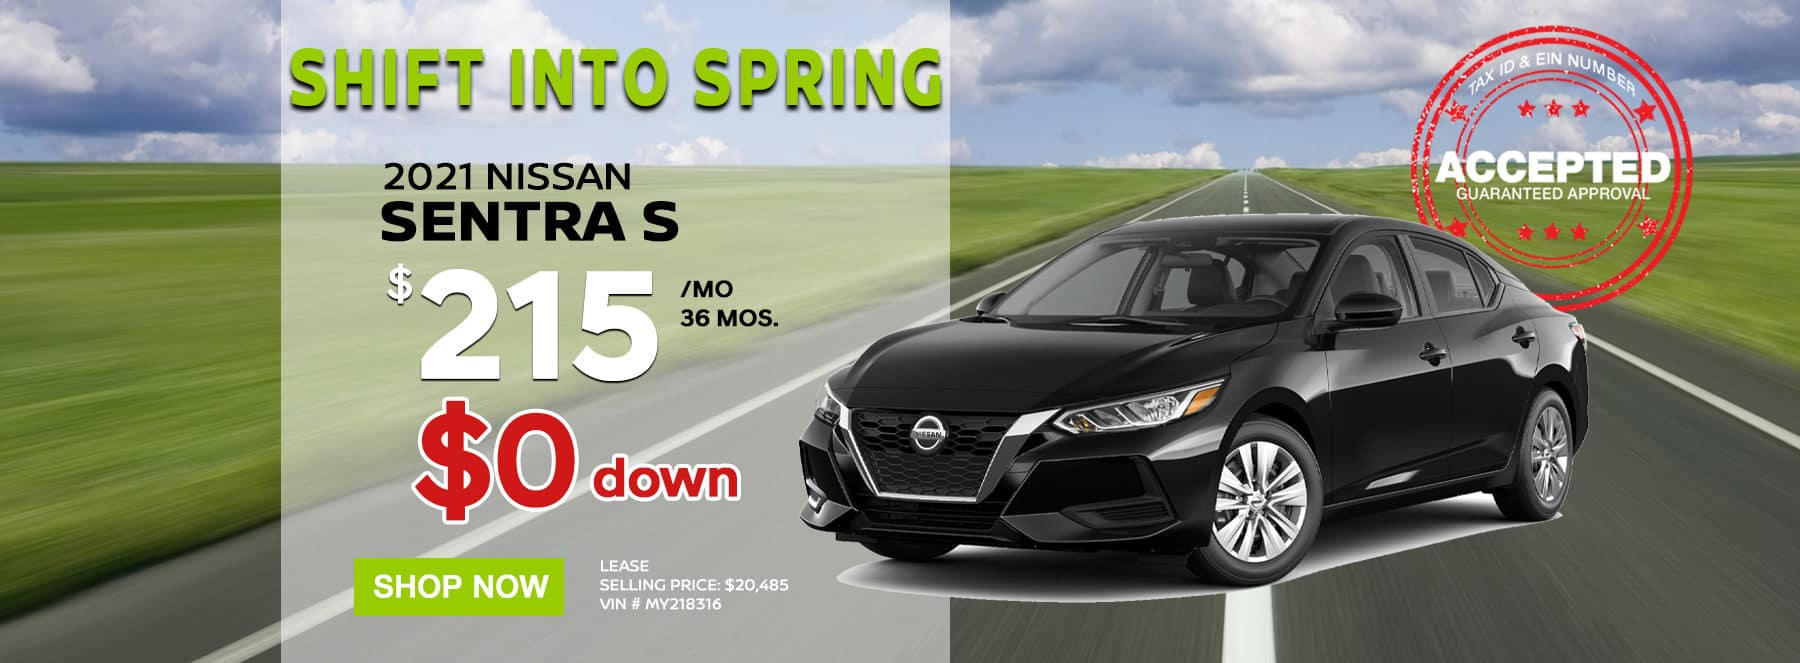 2021 SENTRA S UPDATED